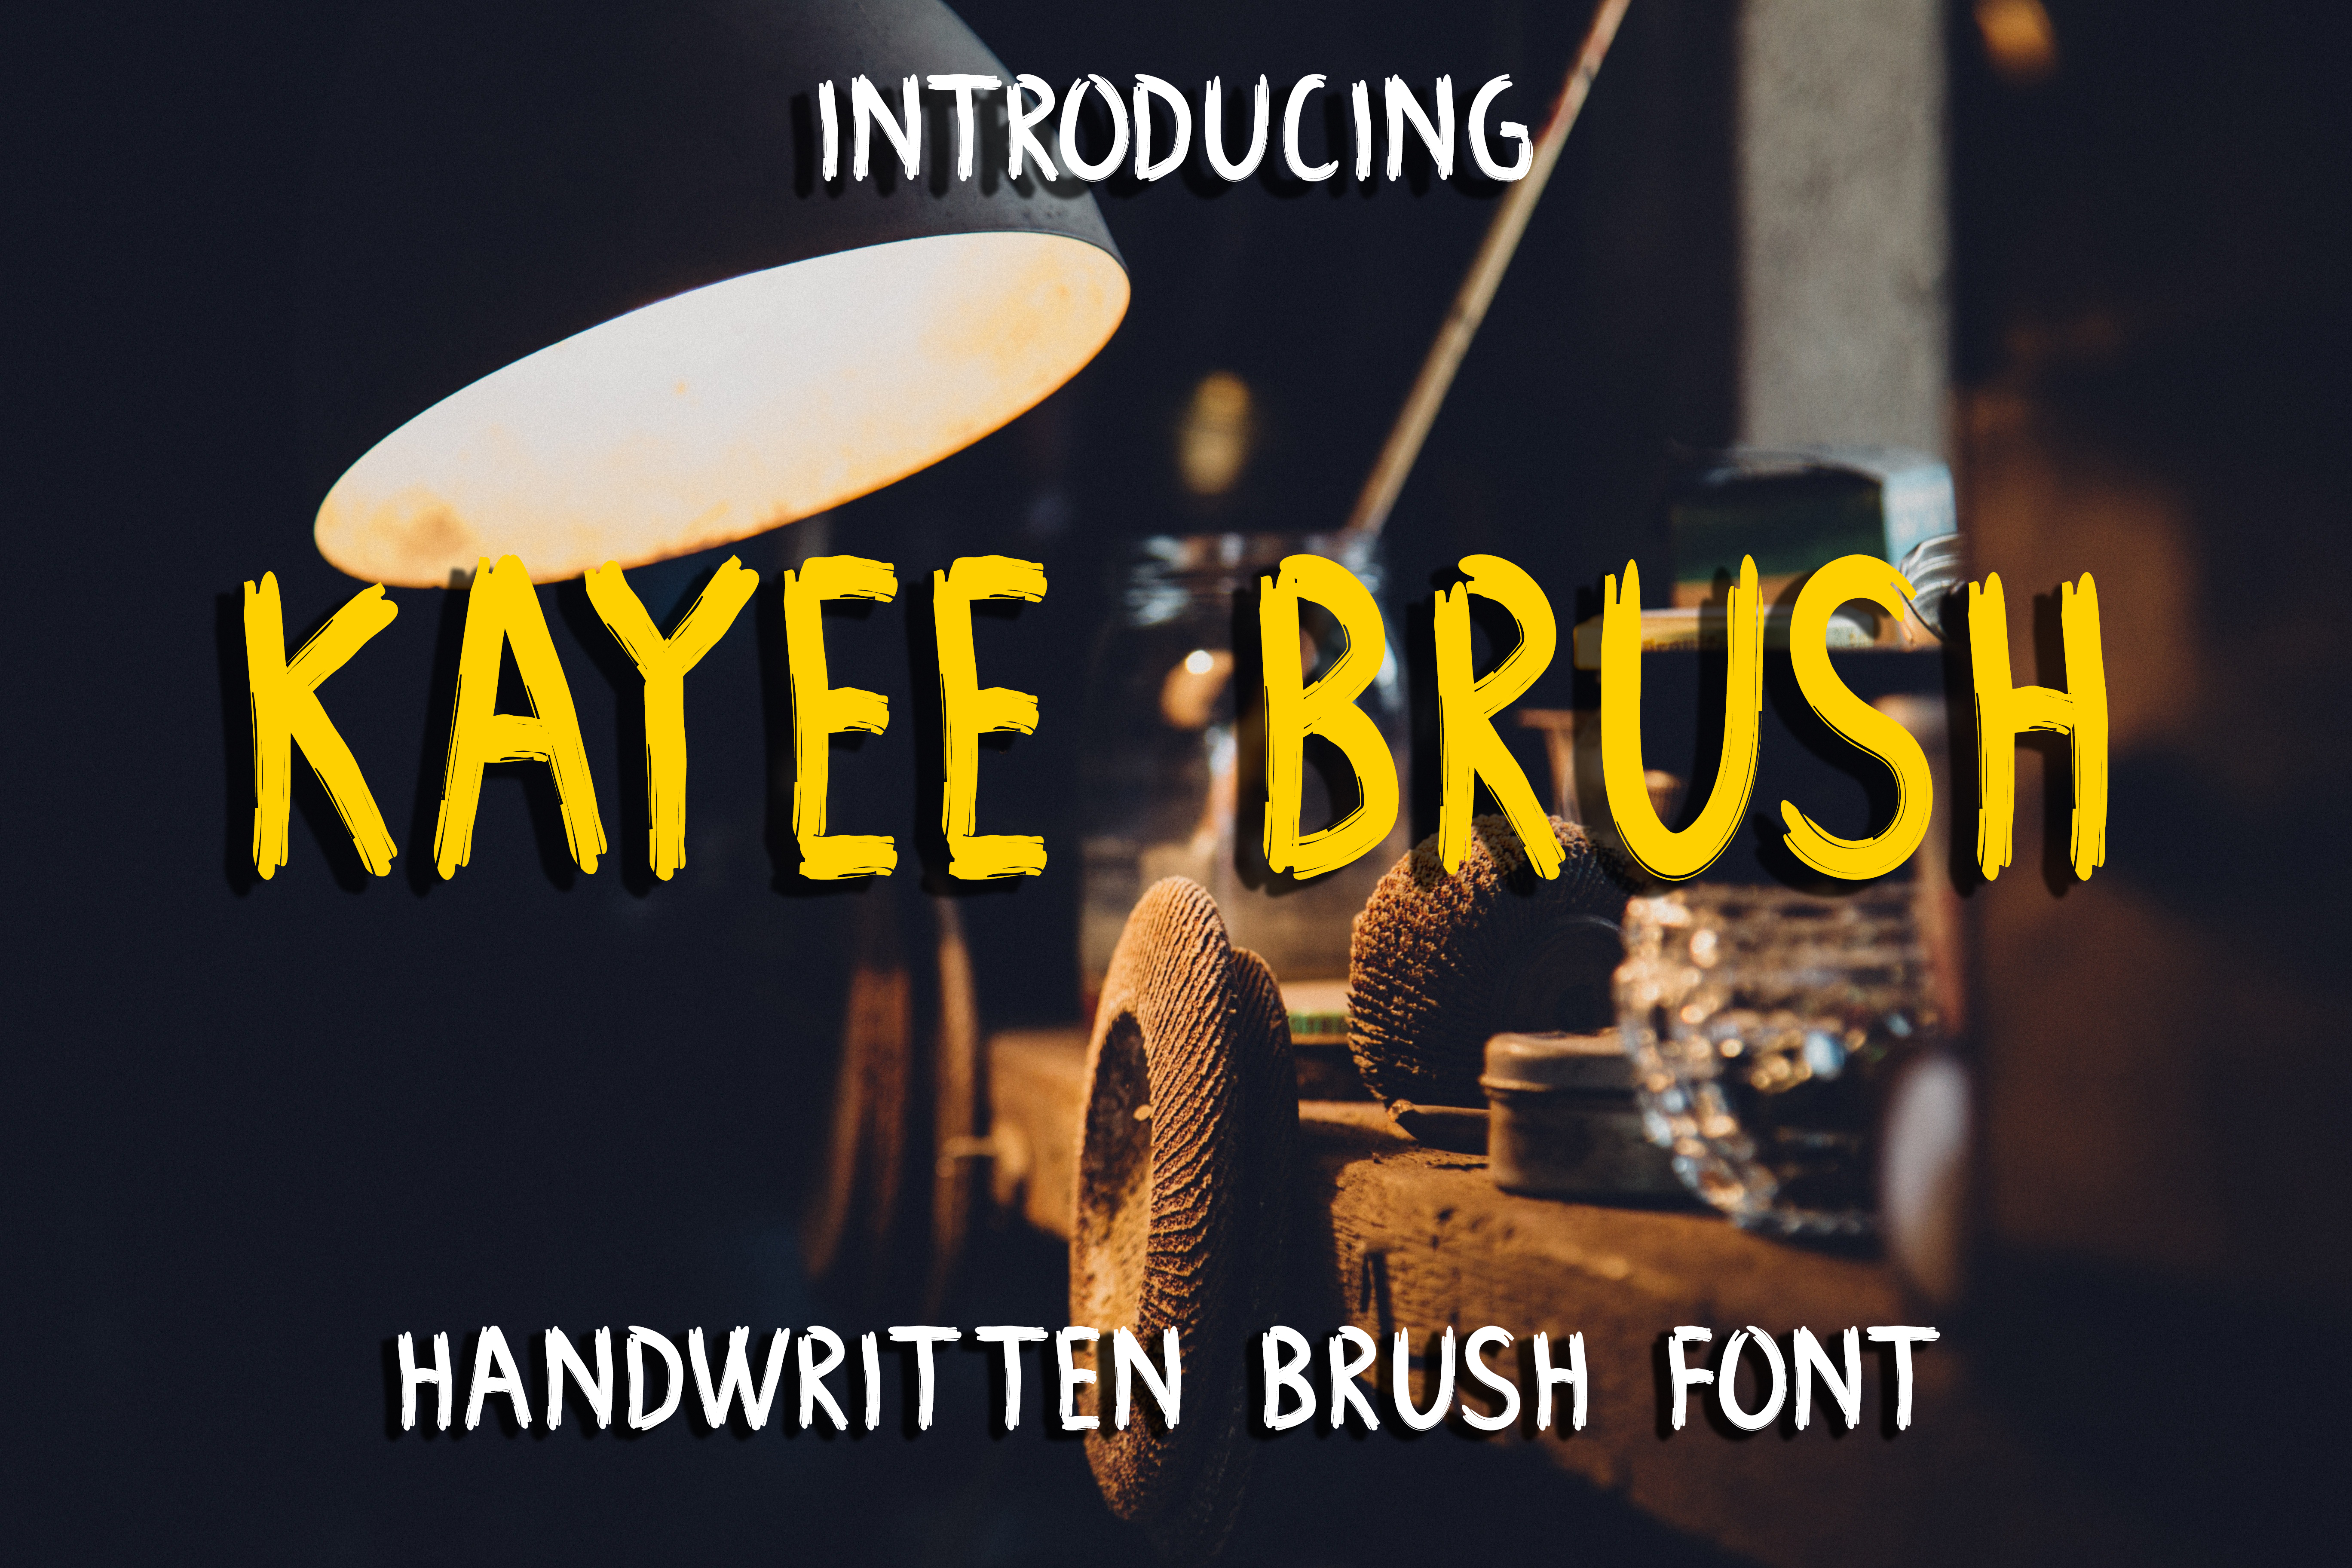 Kayee Brush Font By Boombage